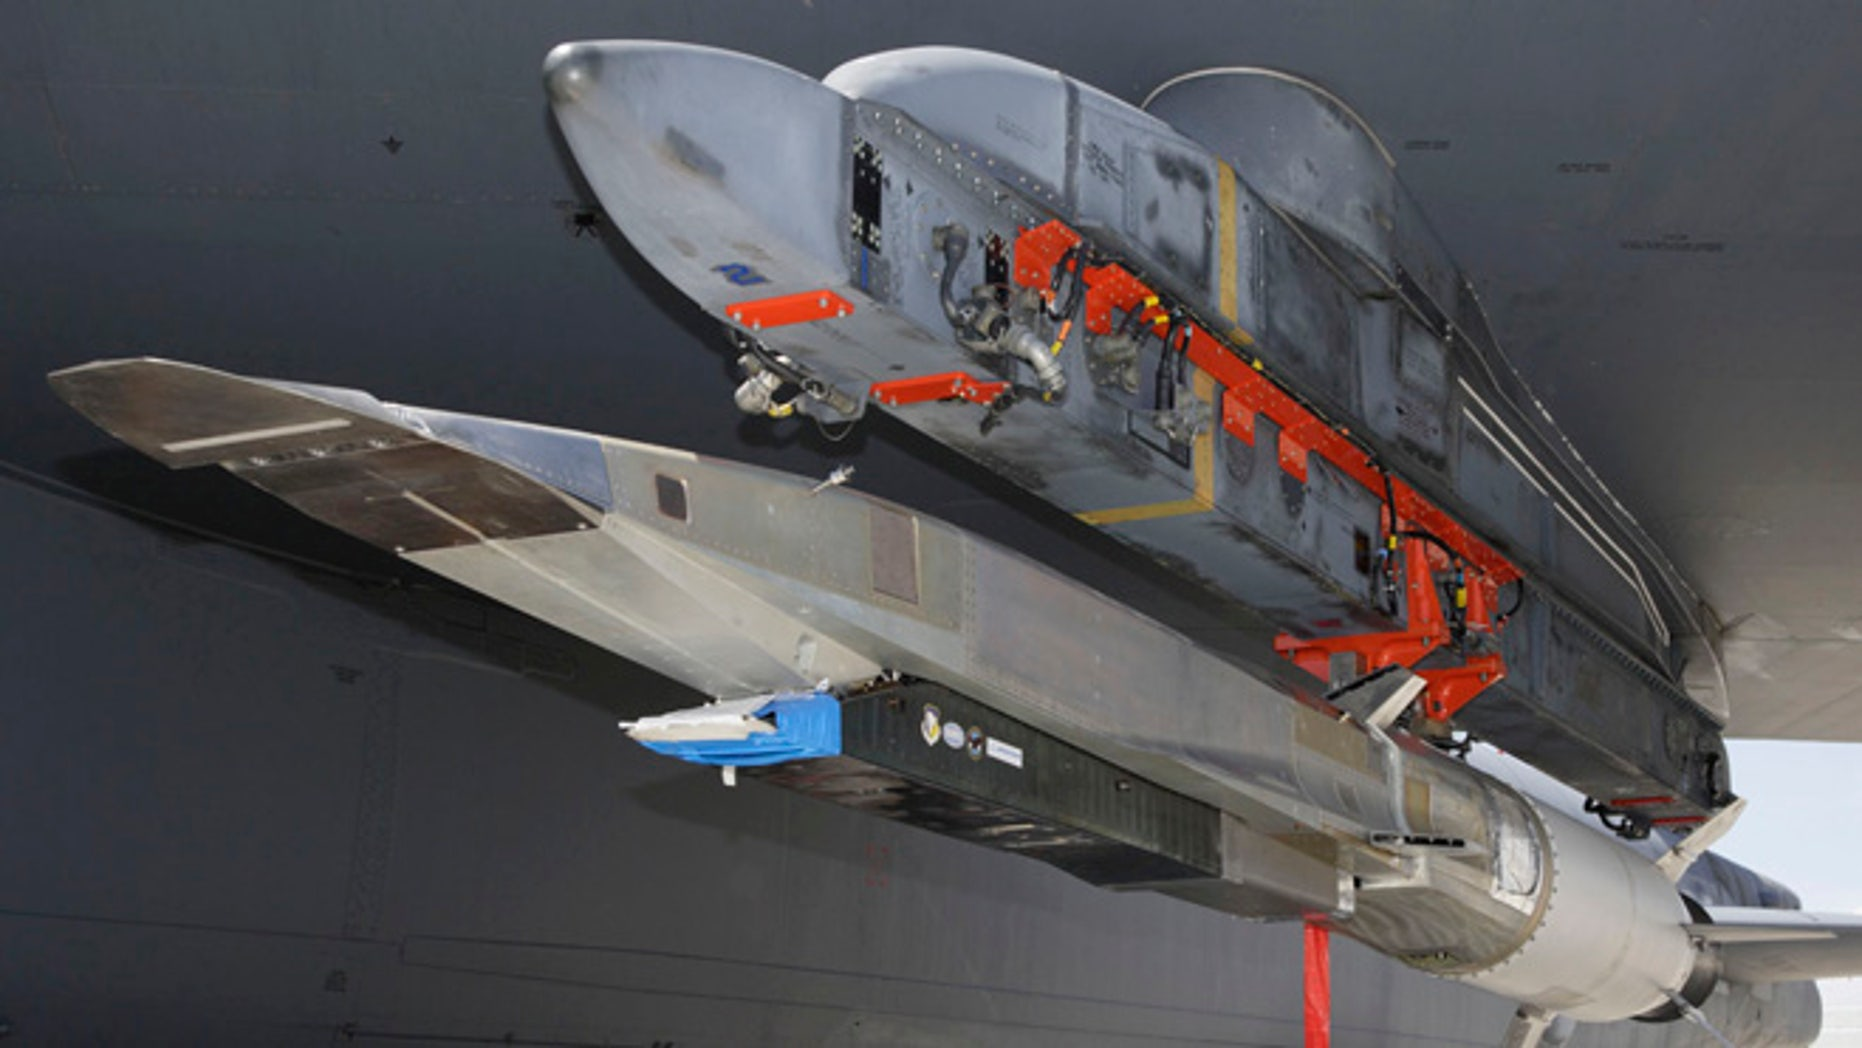 An X-51A WaveRider hypersonic flight test vehicle is uploaded to an Air Force Flight Test Center B-52 for fit testing at Edwards Air Force Base. Four scramjet-powered Waveriders were built for the Air Force. The Los Angeles Times says the unmanned X-51 WaveRider is expected to reach Mach 6 _ or about 3,600 mph _ Tuesday, Aug. 14, 2012, when it's dropped by a B-52 bomber and takes flight off the Southern California coast near Point Mugu.